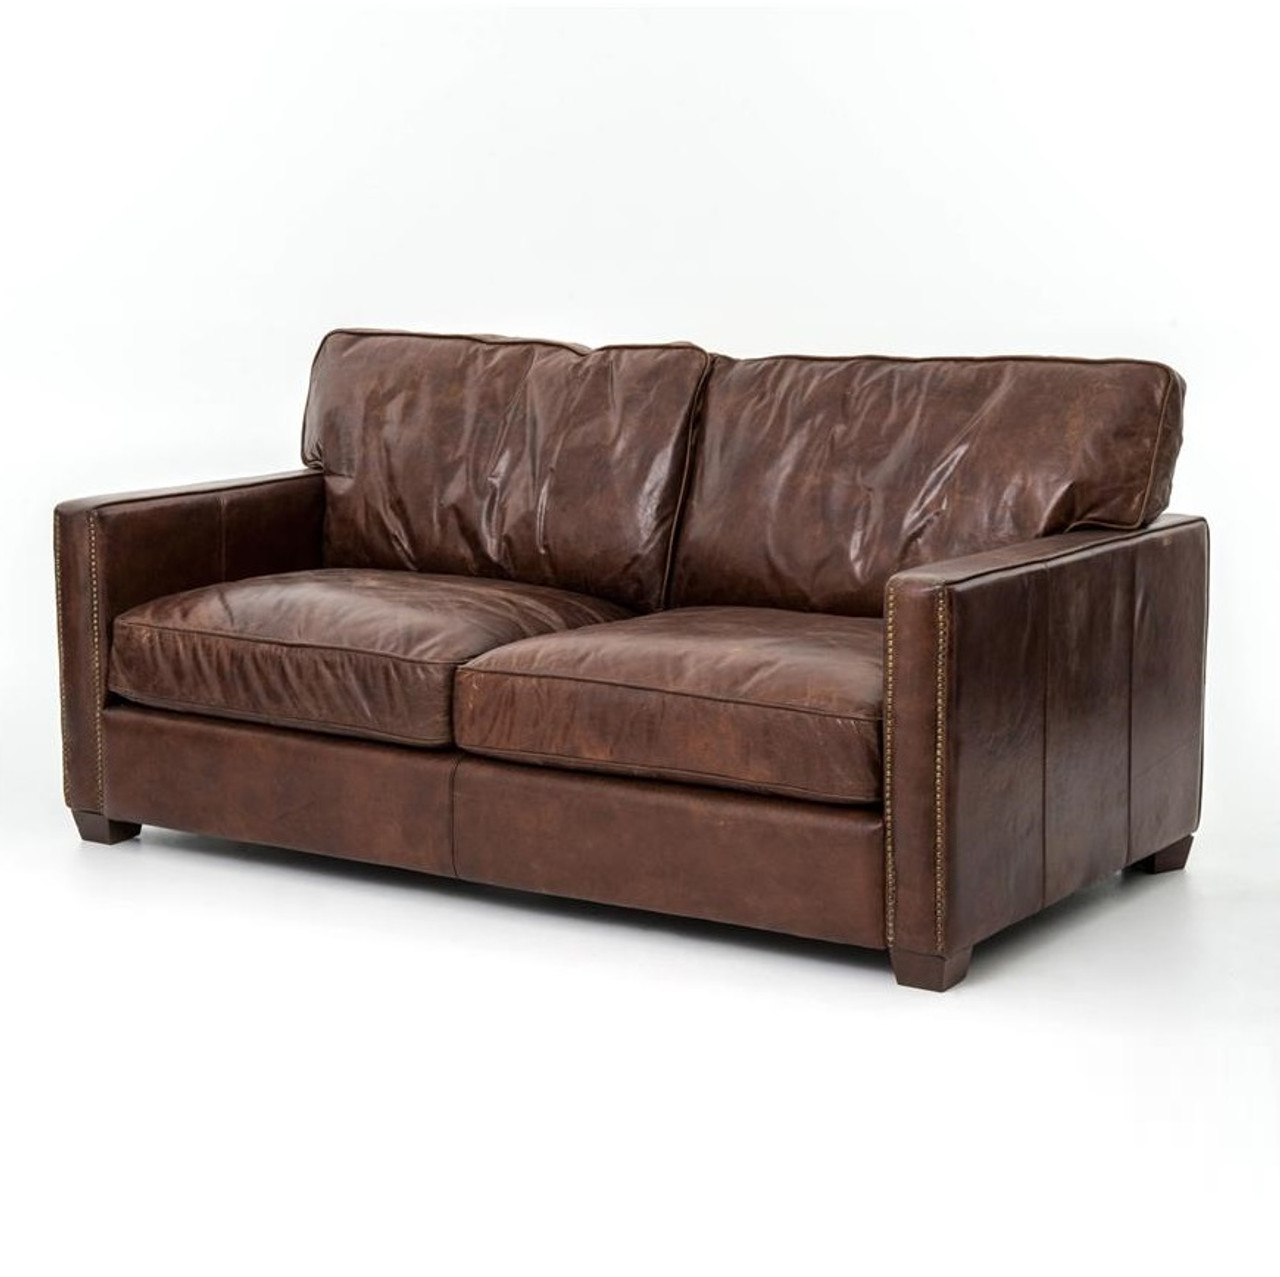 Larkin 2 Seater Vintage Cigar Distressed Leather Sofa Zin Home